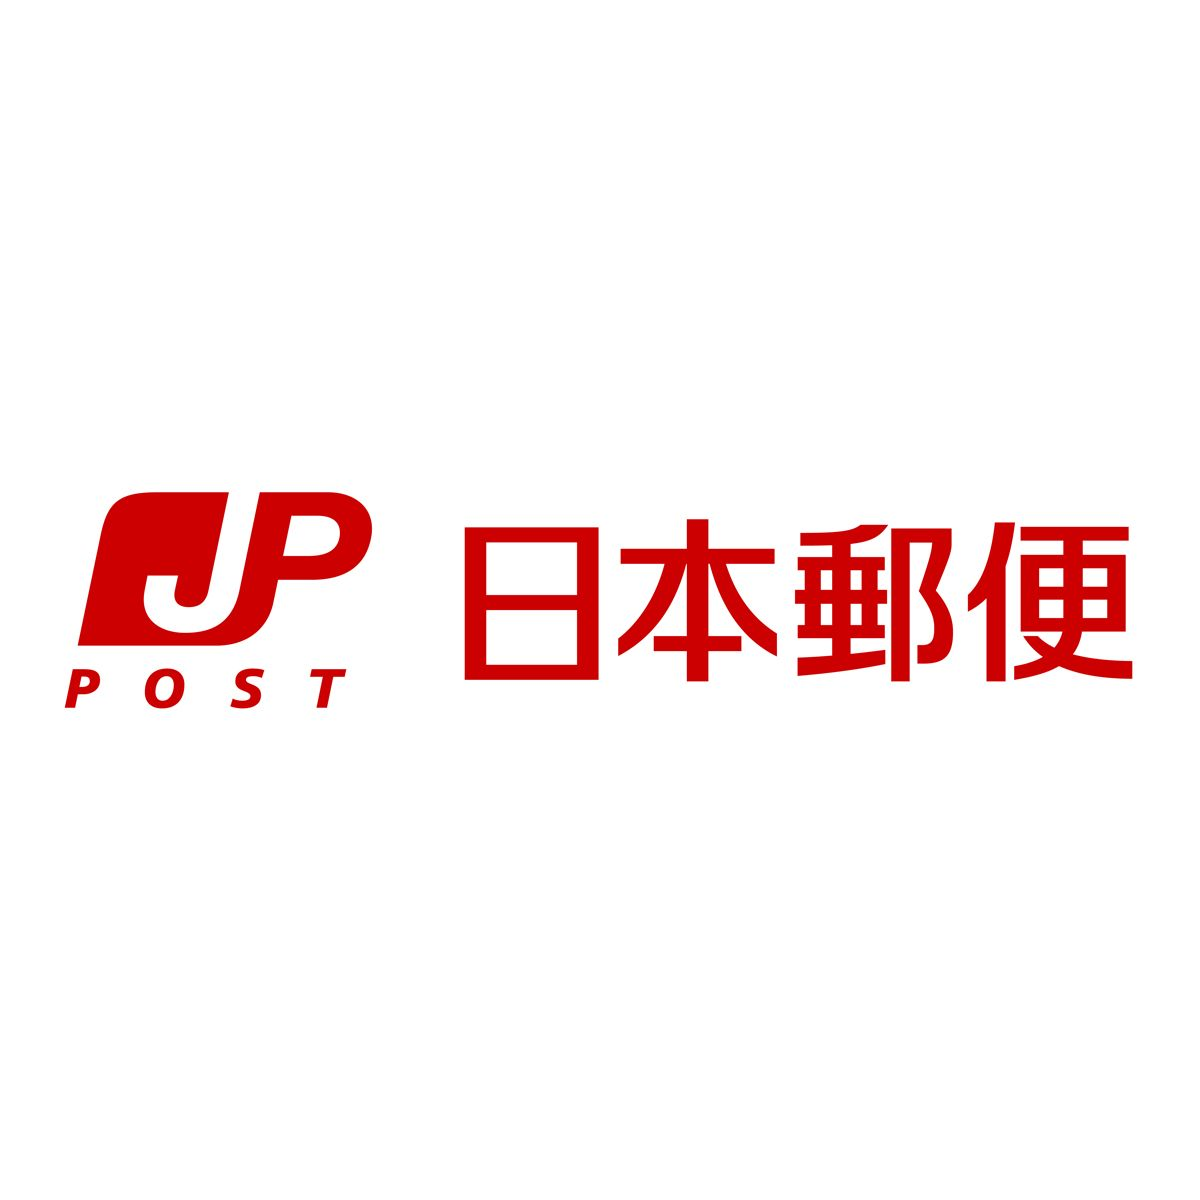 Japan Post Announcement